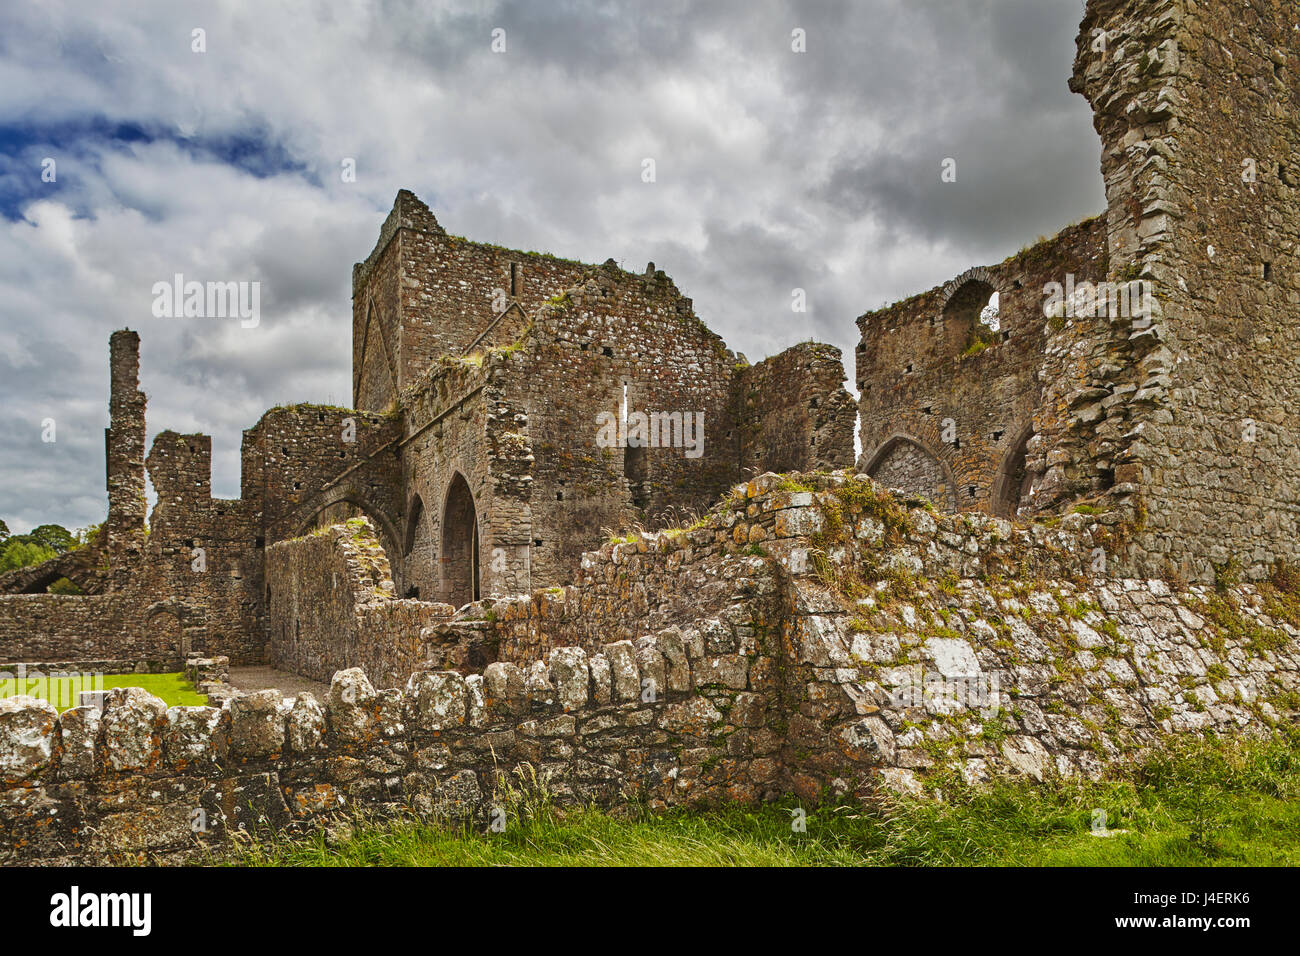 The ruins of Hore Abbey, near the ruins of the Rock of Cashel, Cashel, County Tipperary, Munster, Republic of Ireland, Stock Photo